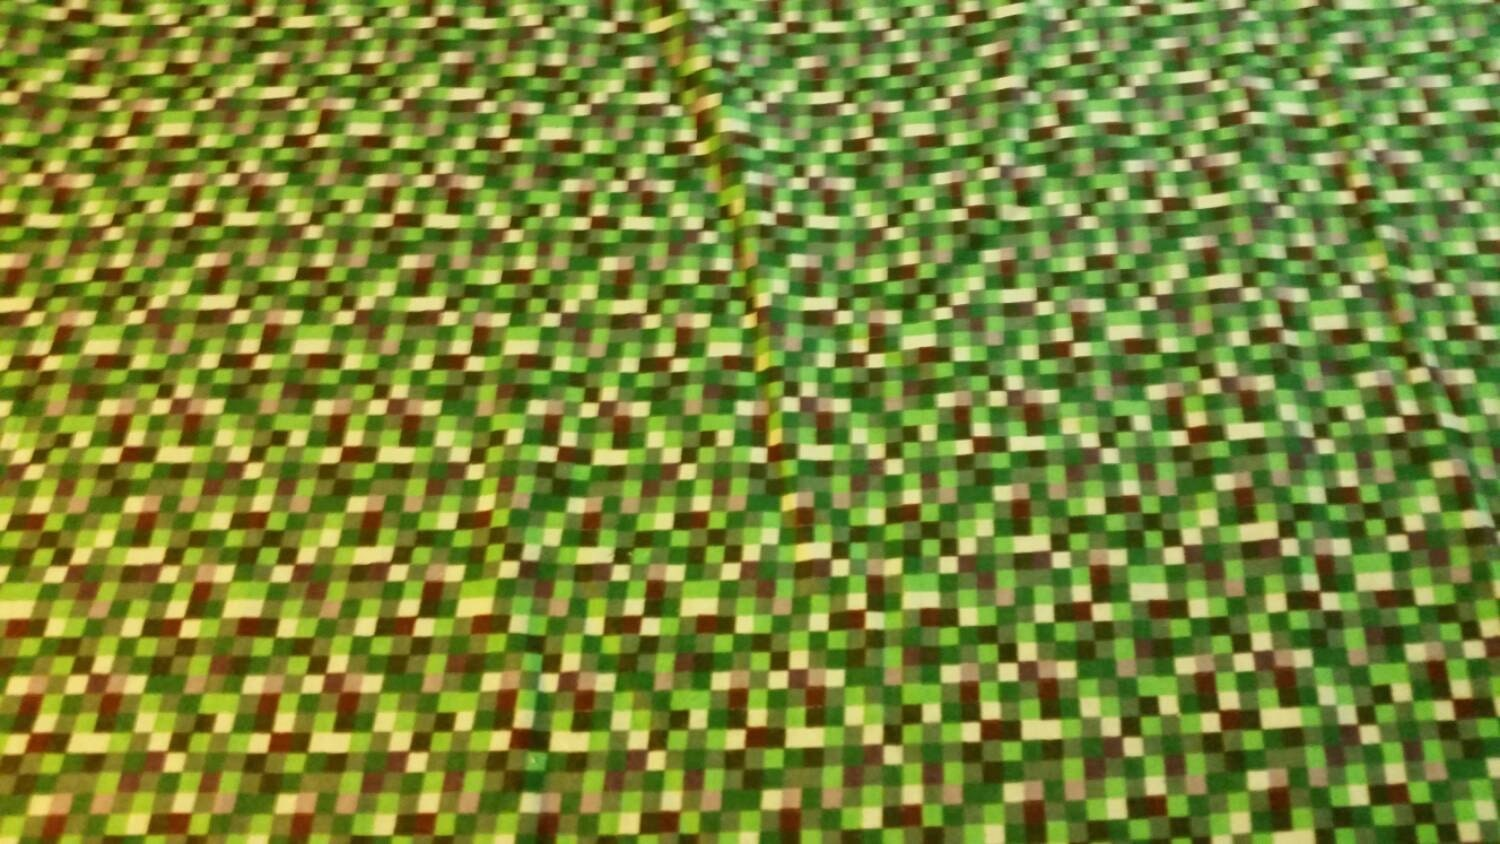 Minecraft inspired fabric 16 bit cotton flannel bty for Minecraft fabric by the yard